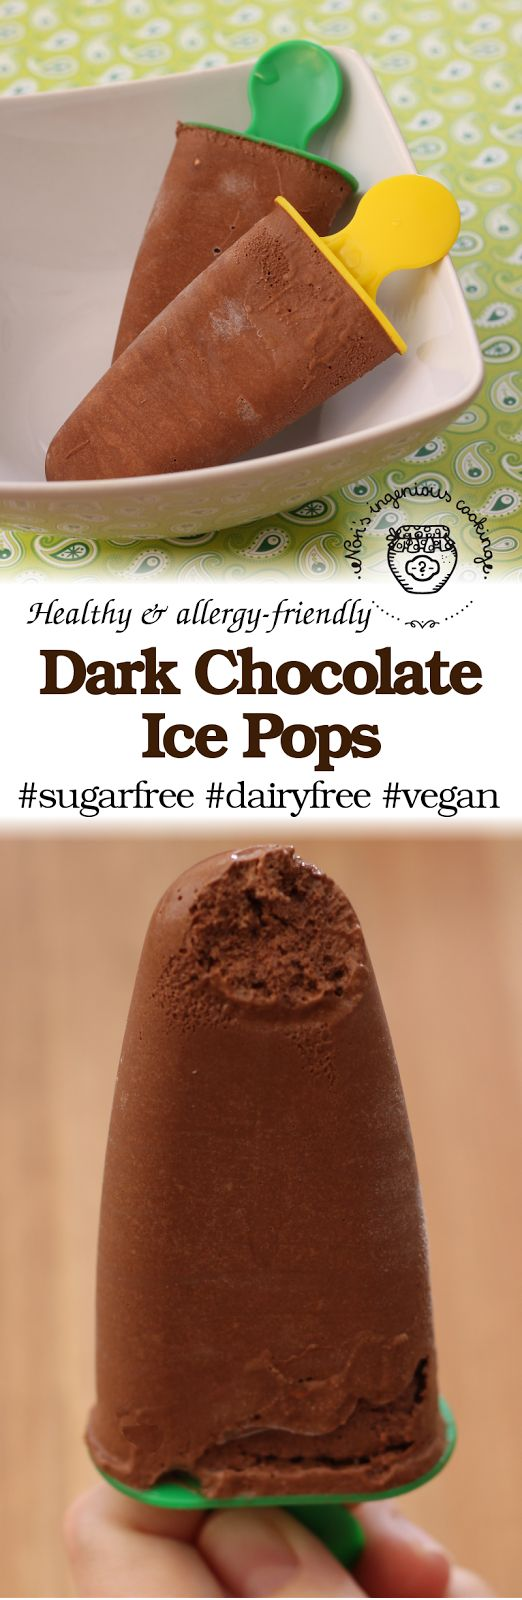 Nóri's ingenious cooking: Diet-friendly dark chocolate ice pops